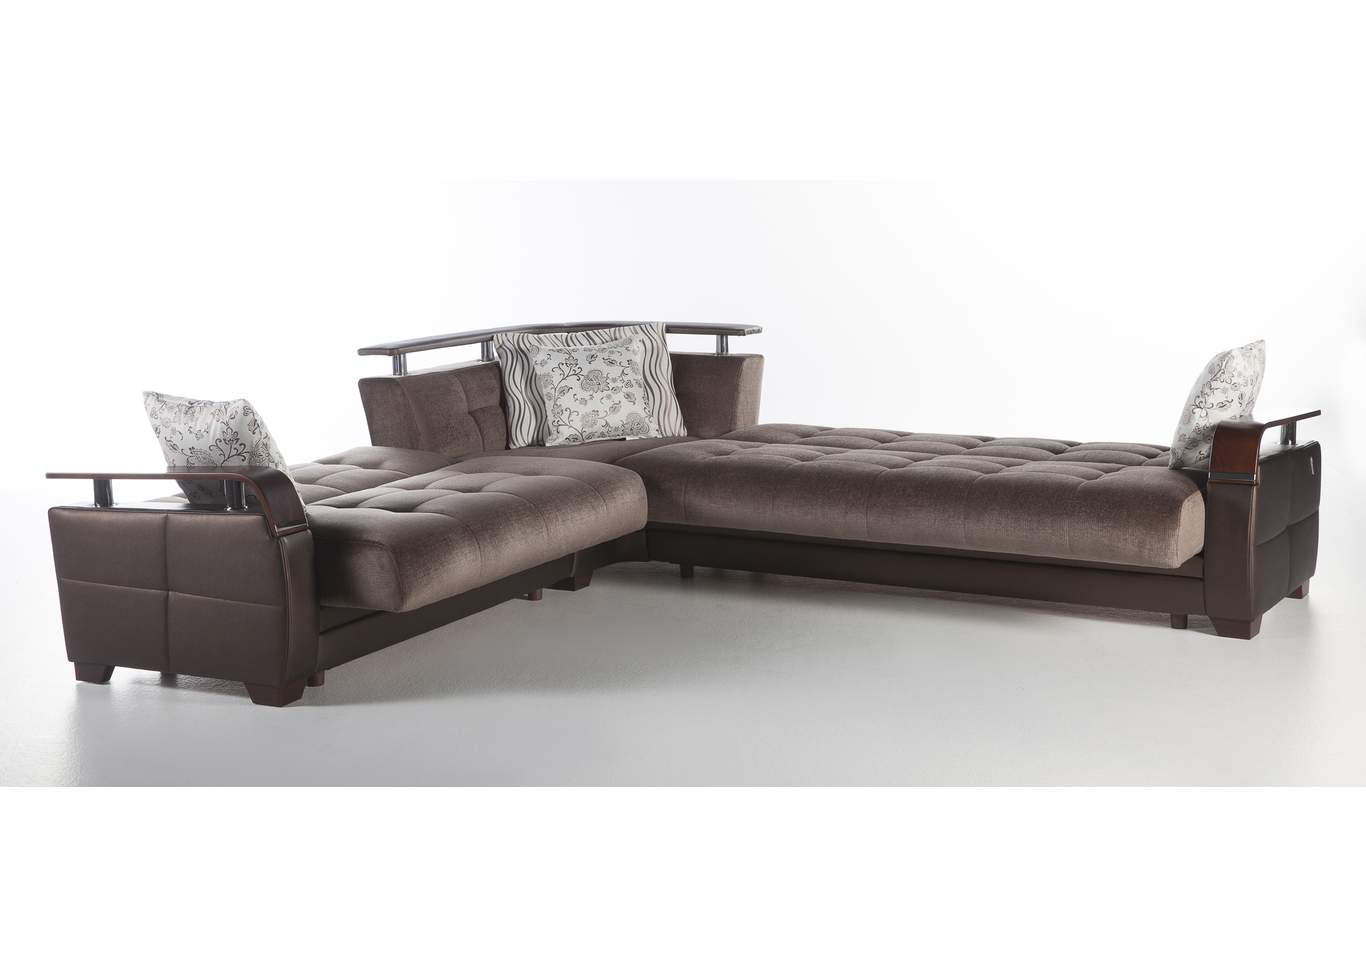 Natural Prestige Brown Sectional,Hudson Furniture & Bedding